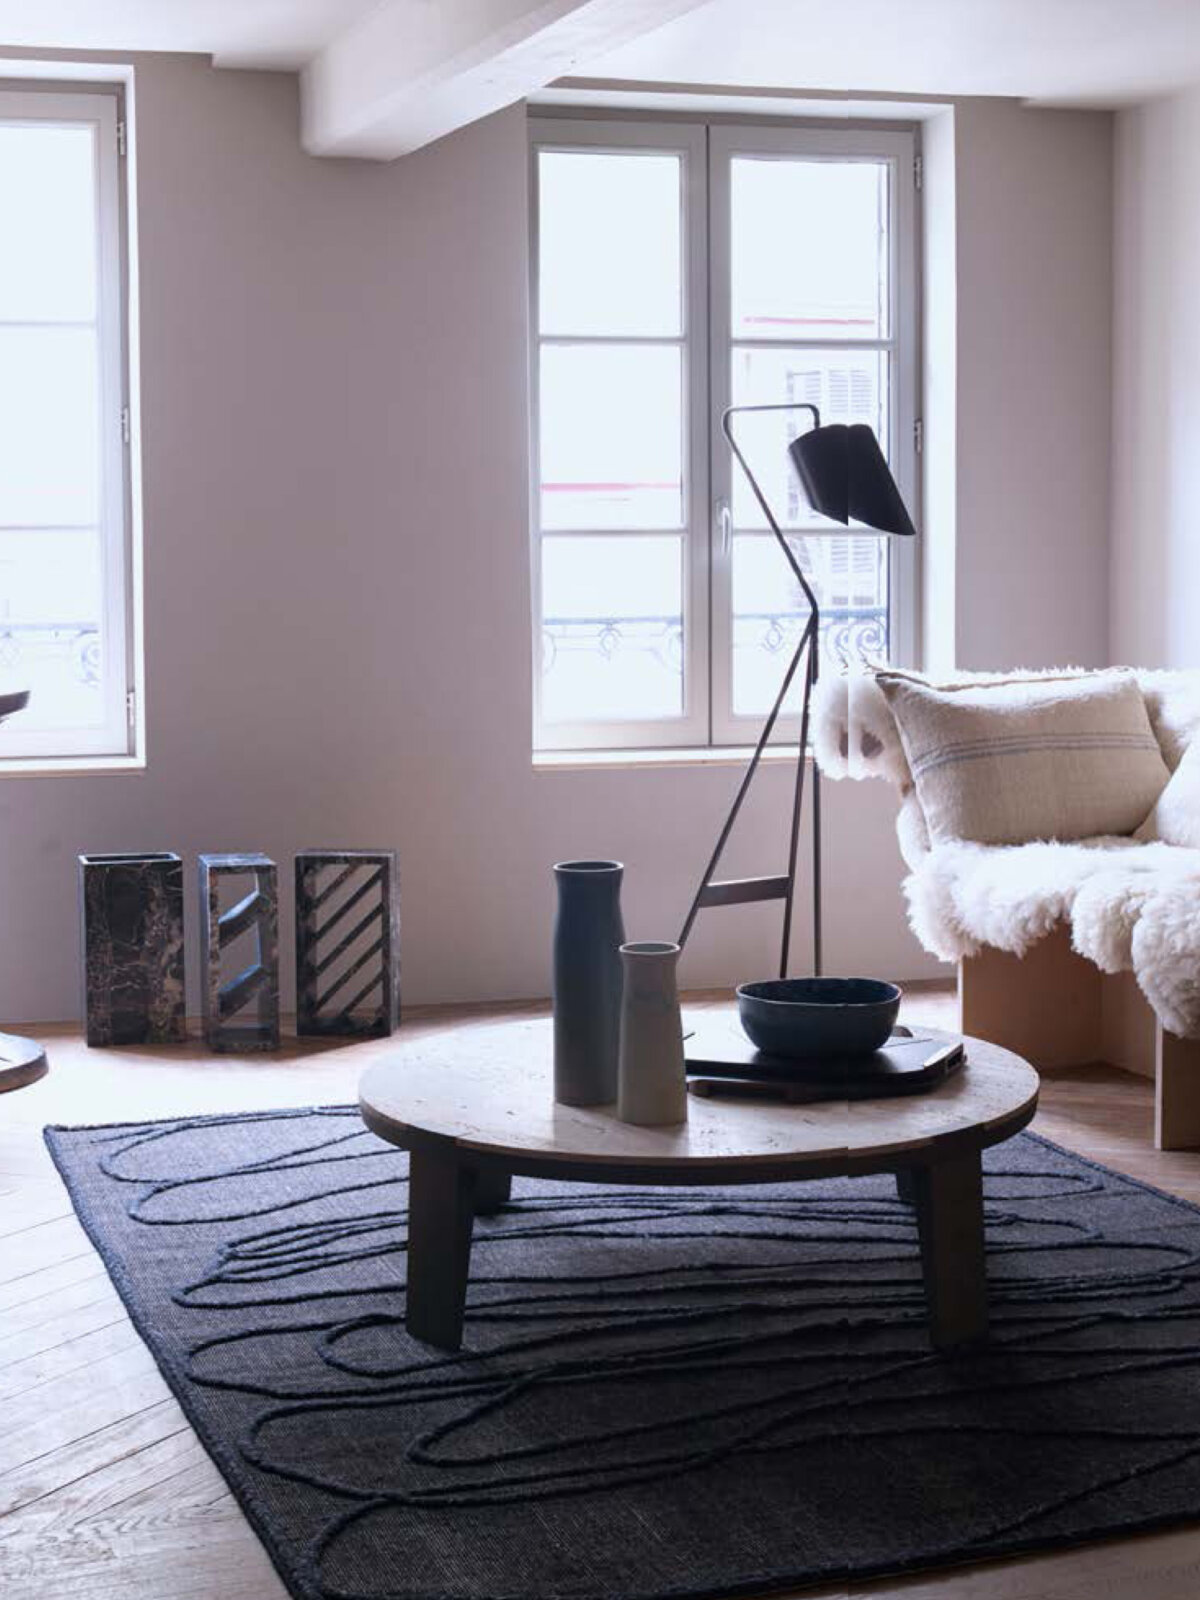 Inventory collection designed by faye toogood for Elle decoration uk